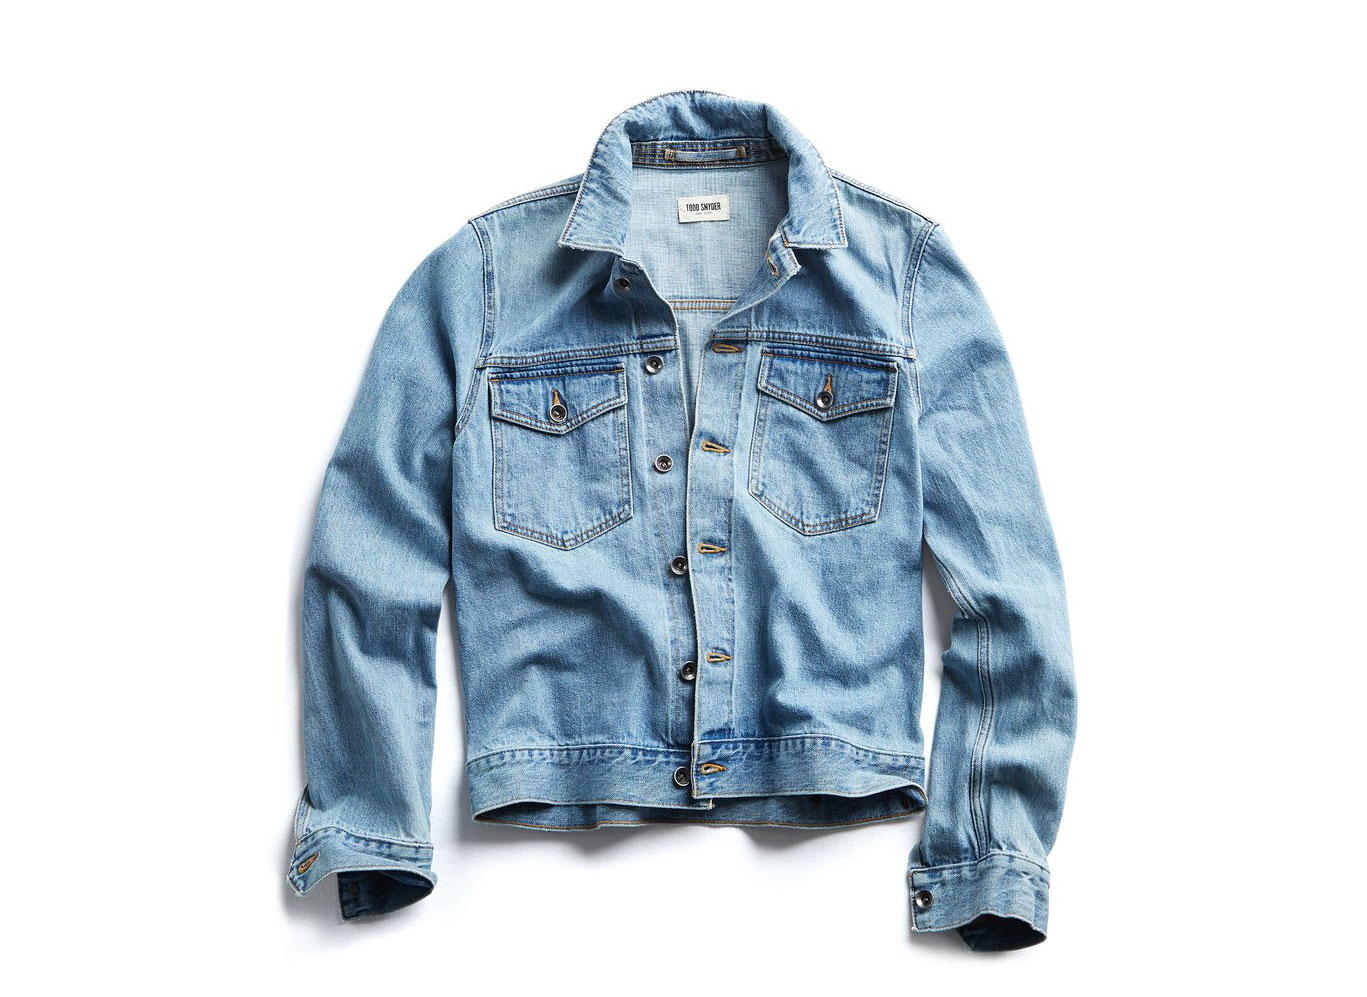 JAPANESE STRETCH SELVEDGE DENIM JACKET IN DAD WASH